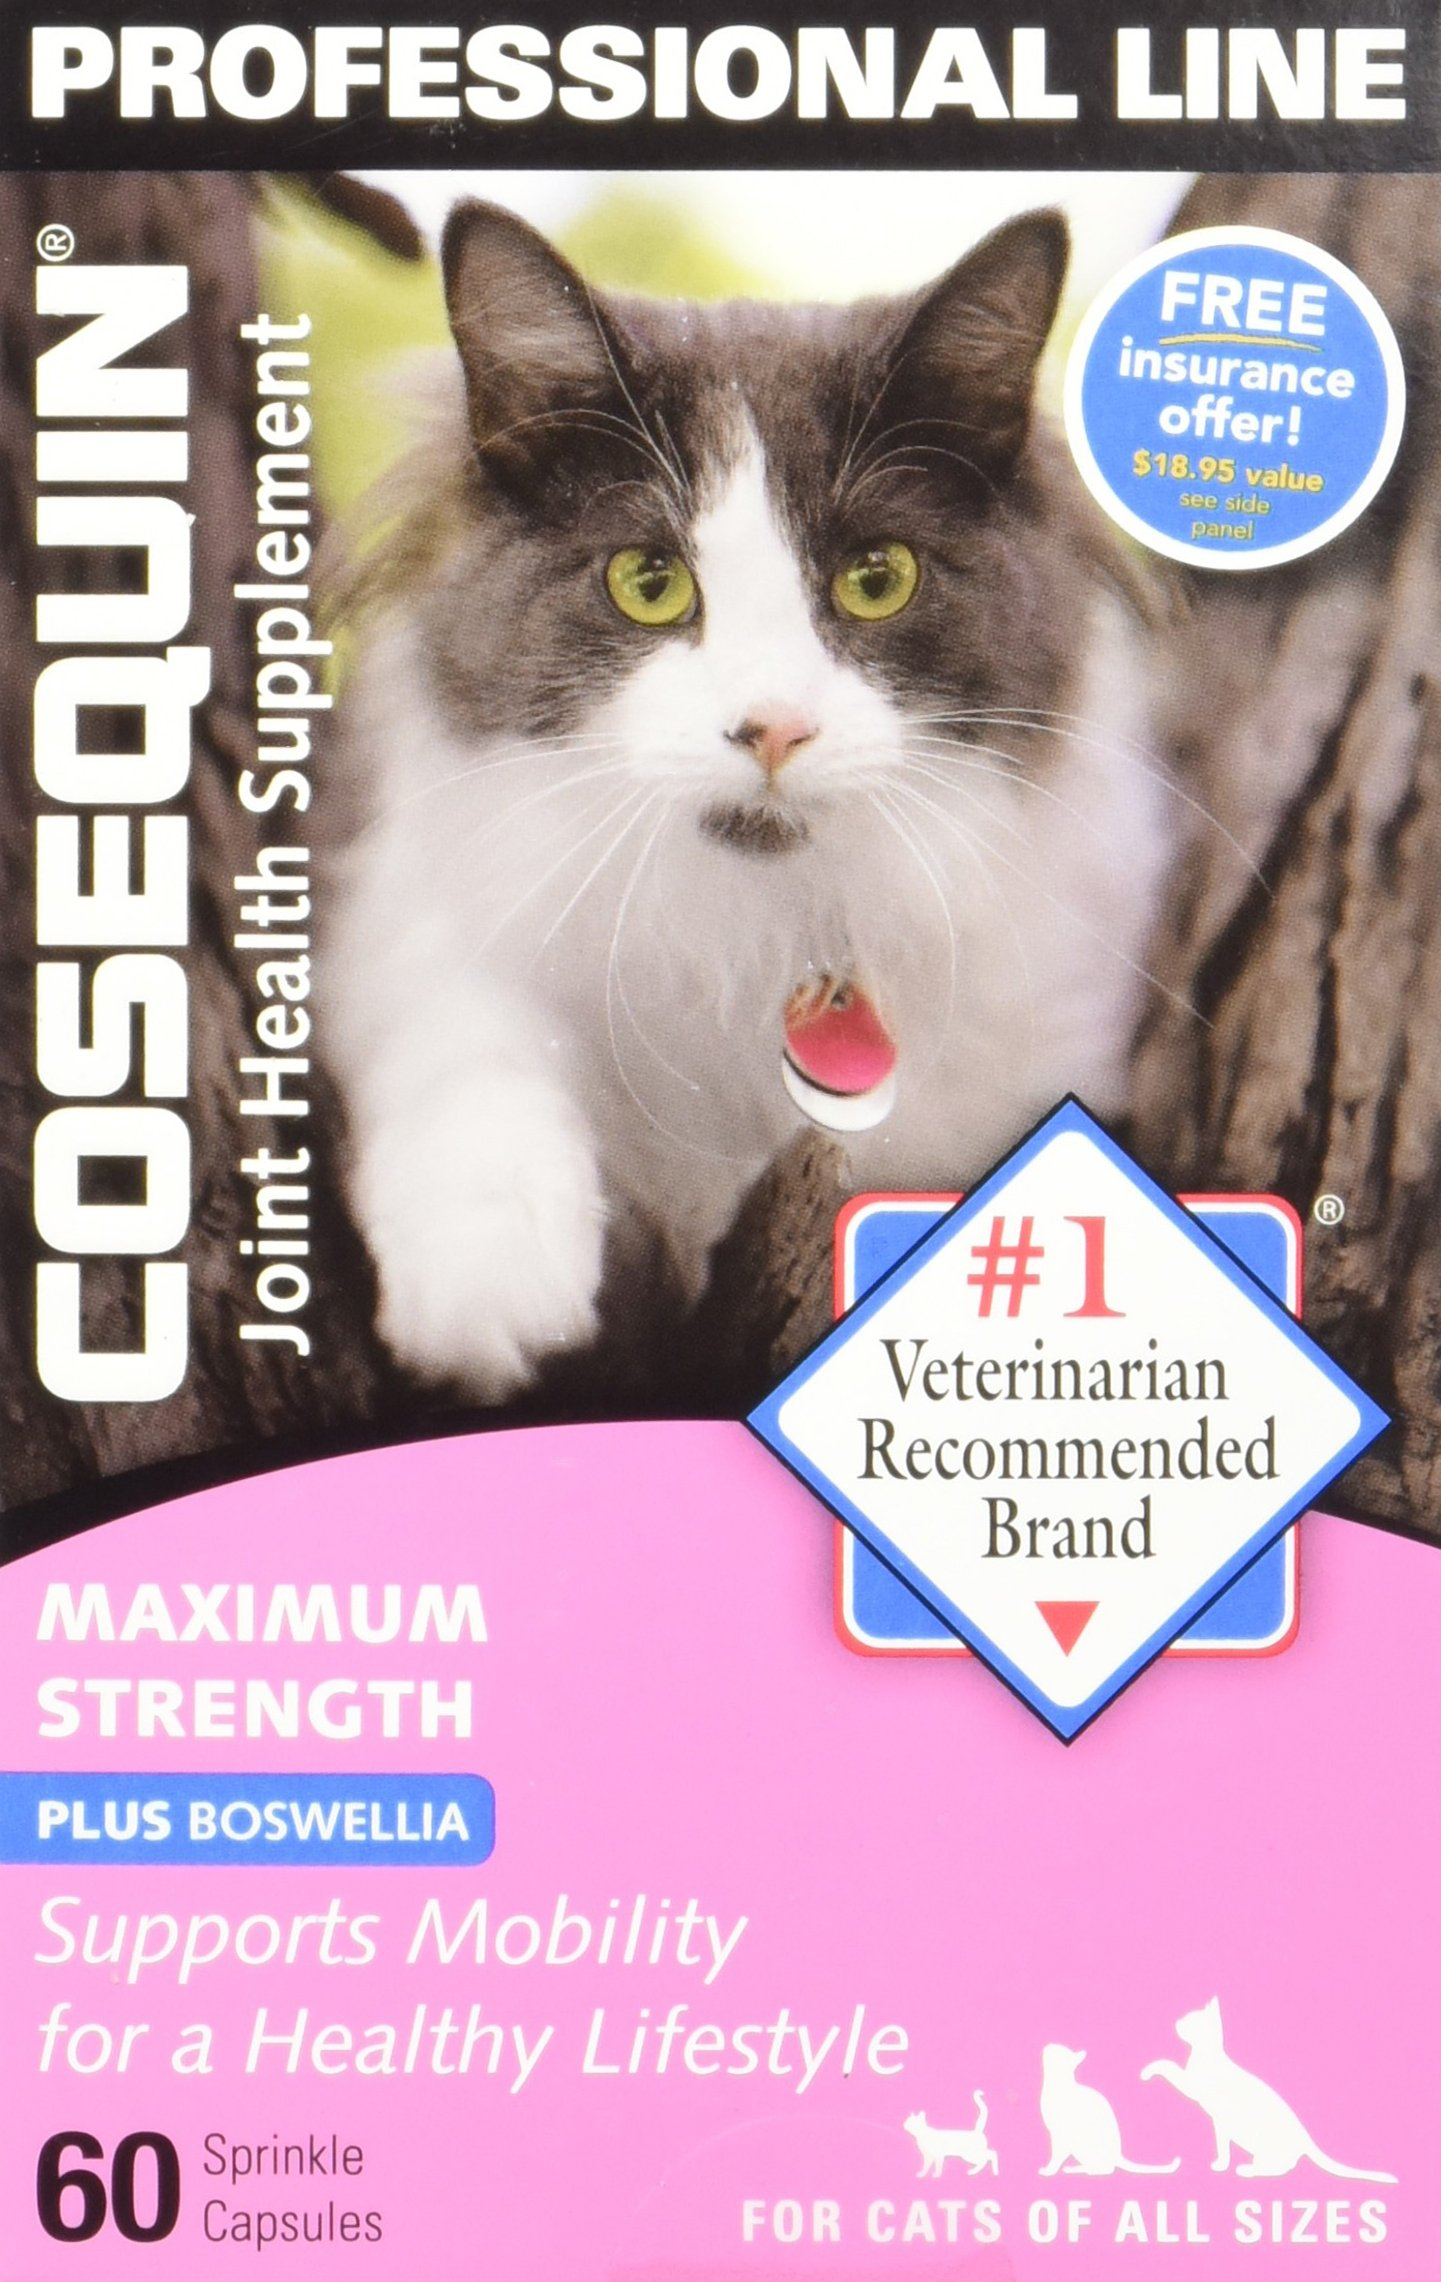 Best Rated In Cat Hip Joint Care Helpful Customer Reviews Nutrimax Healthy 60 Tablet Maximum Strength Plus Boswellia Health Supplement For All Cats Capsules Product Image